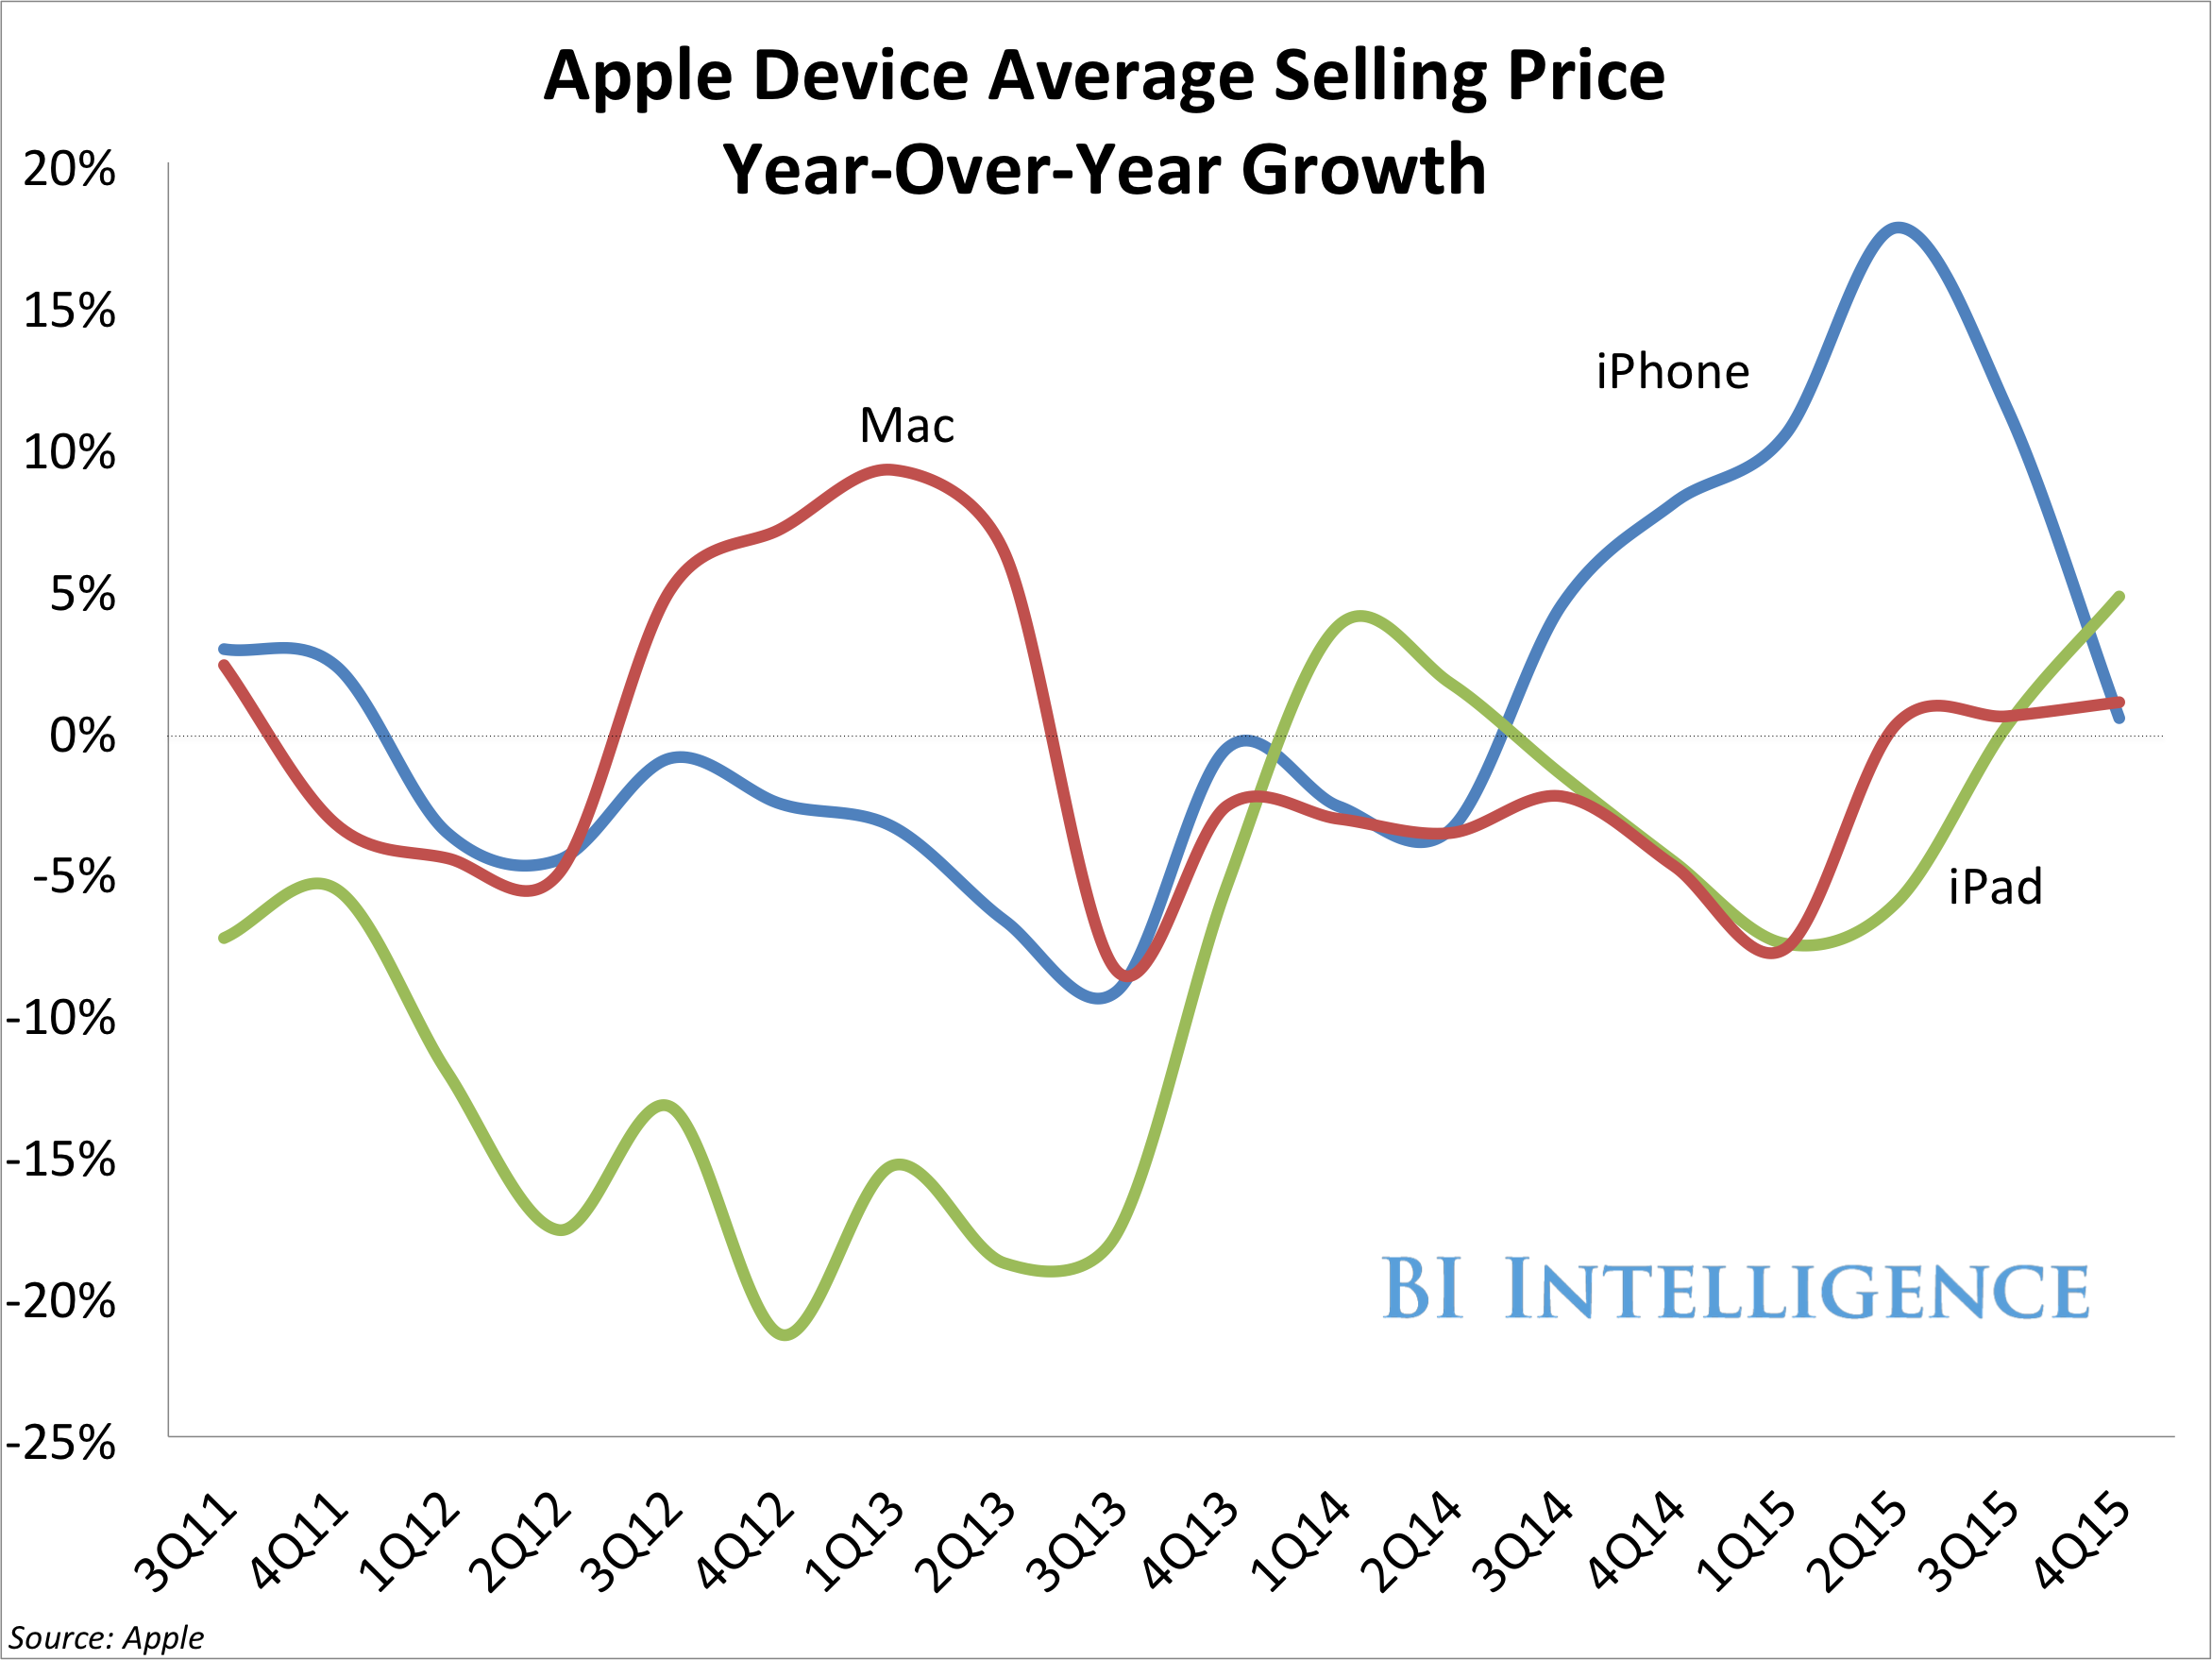 bii apple product ASP YOY growth